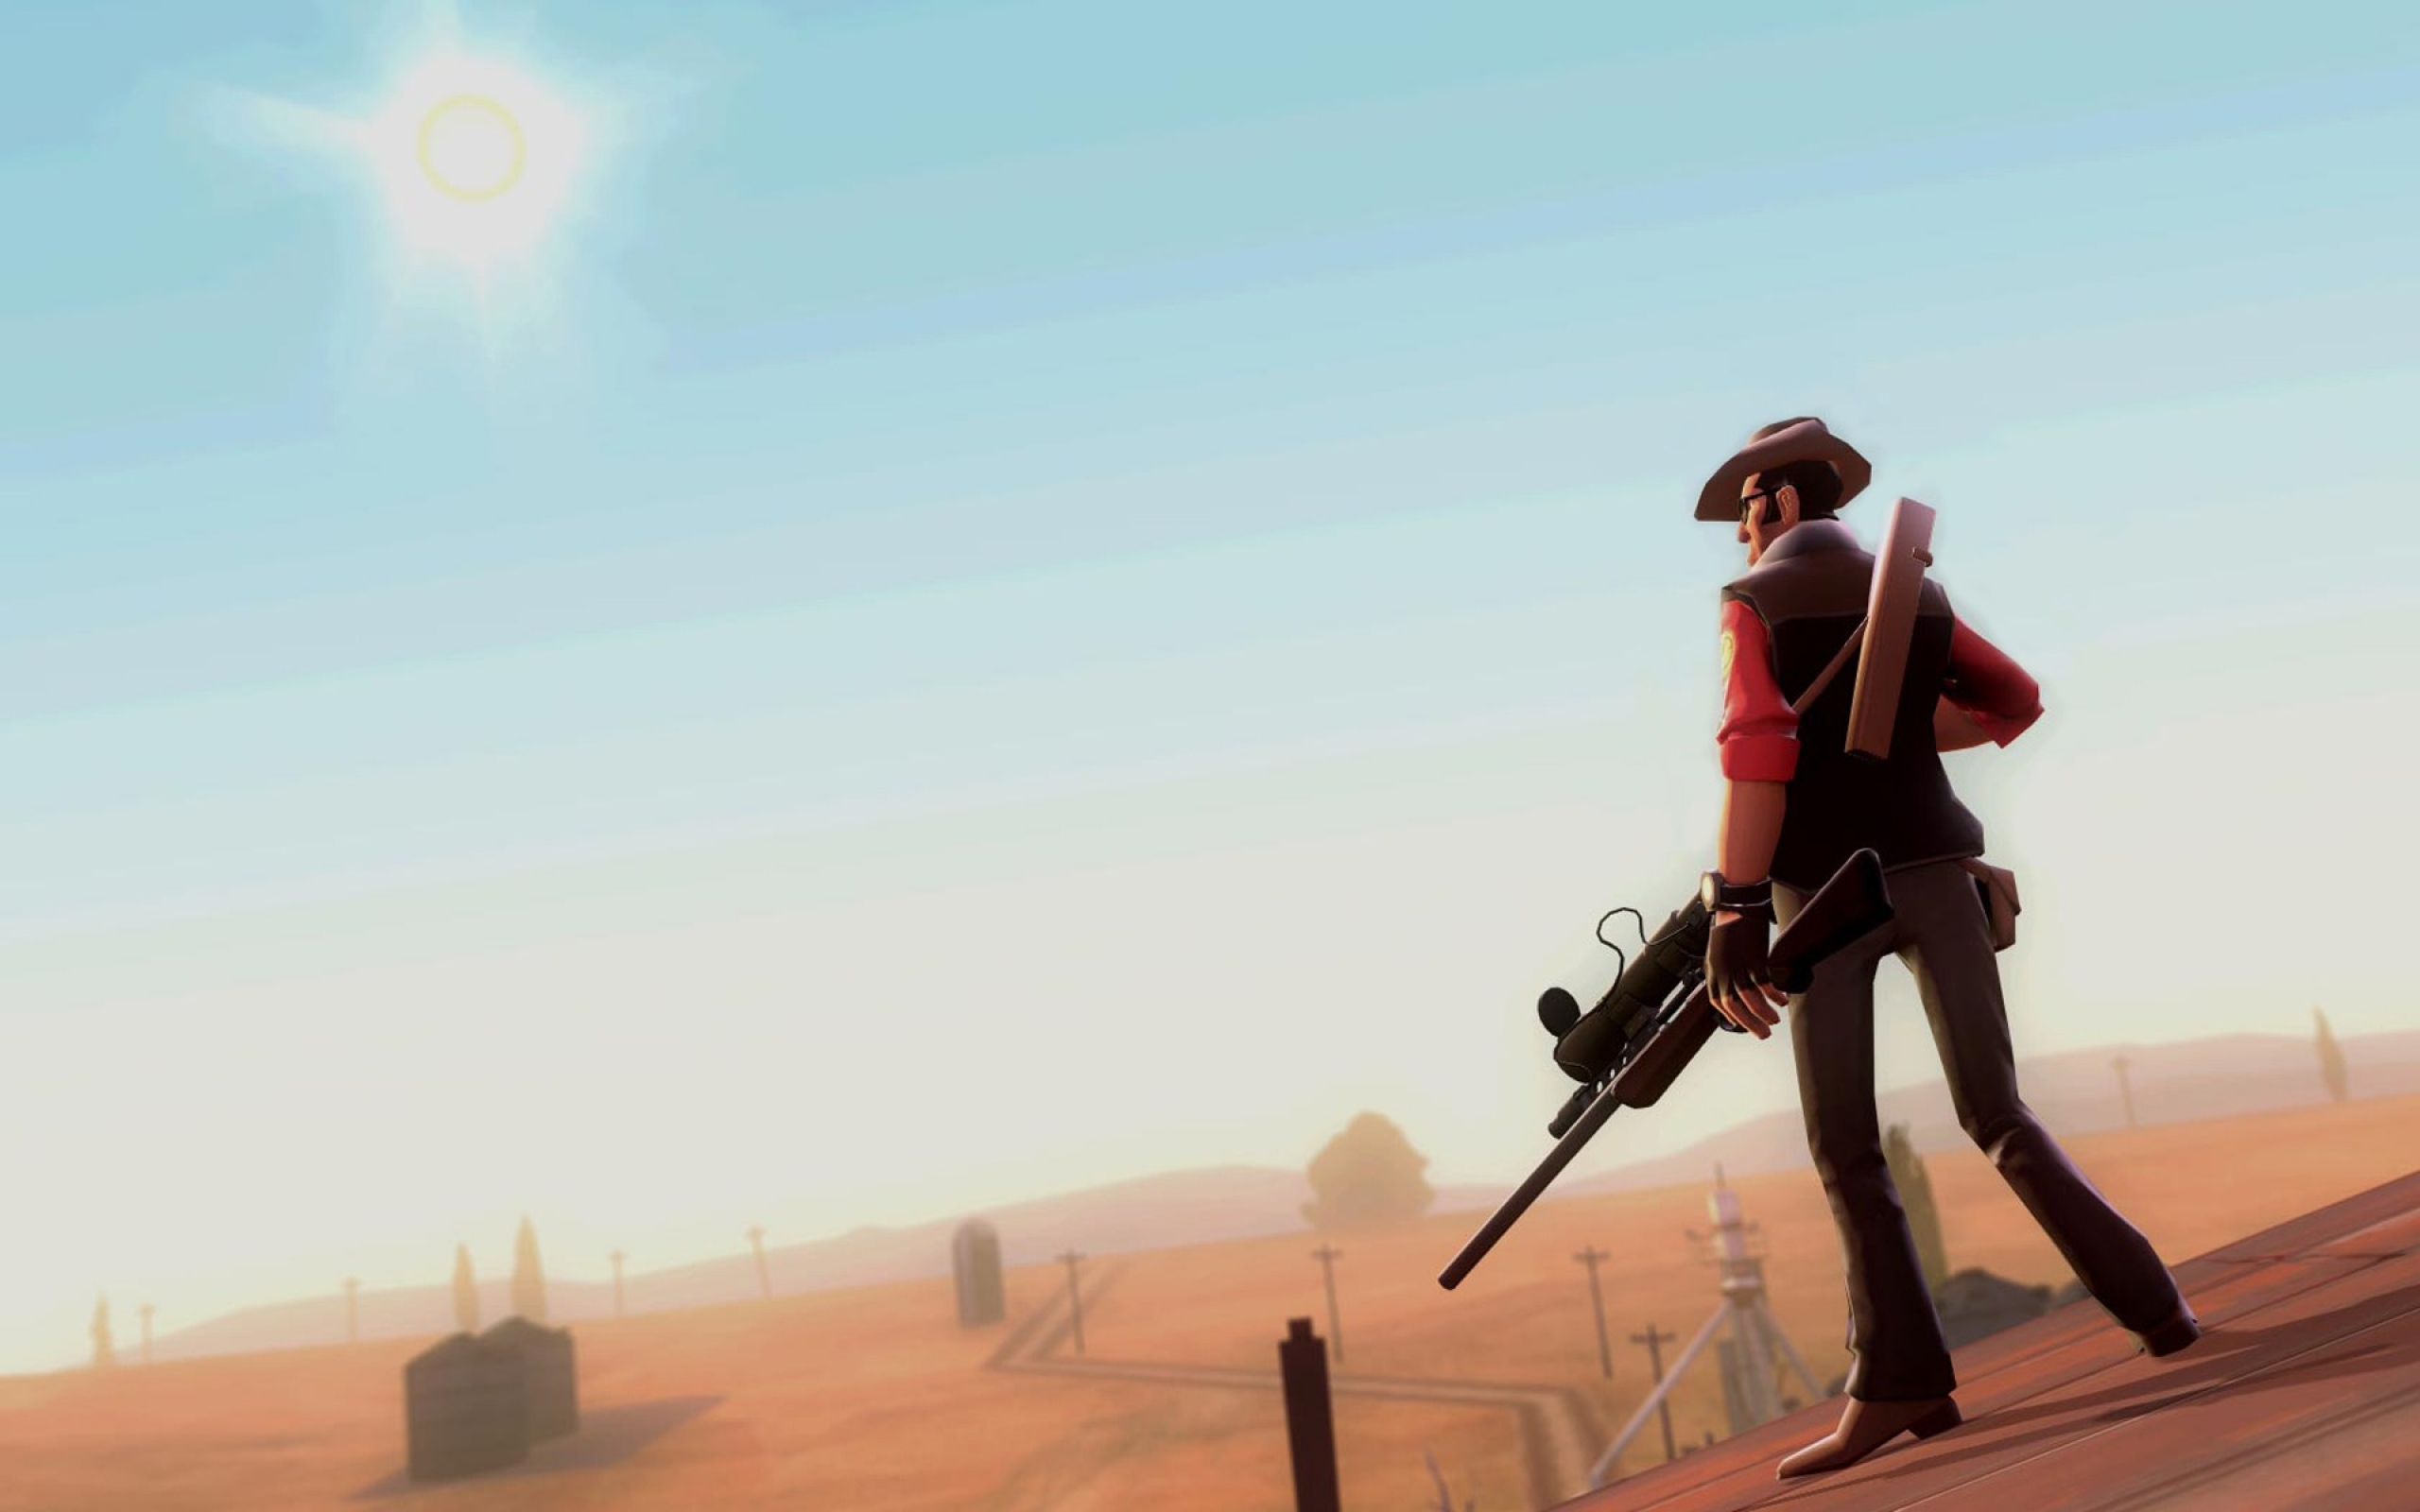 Awesome Wallpapers Team Fortress 2 HQ 29 Wallpapers 2560x1600